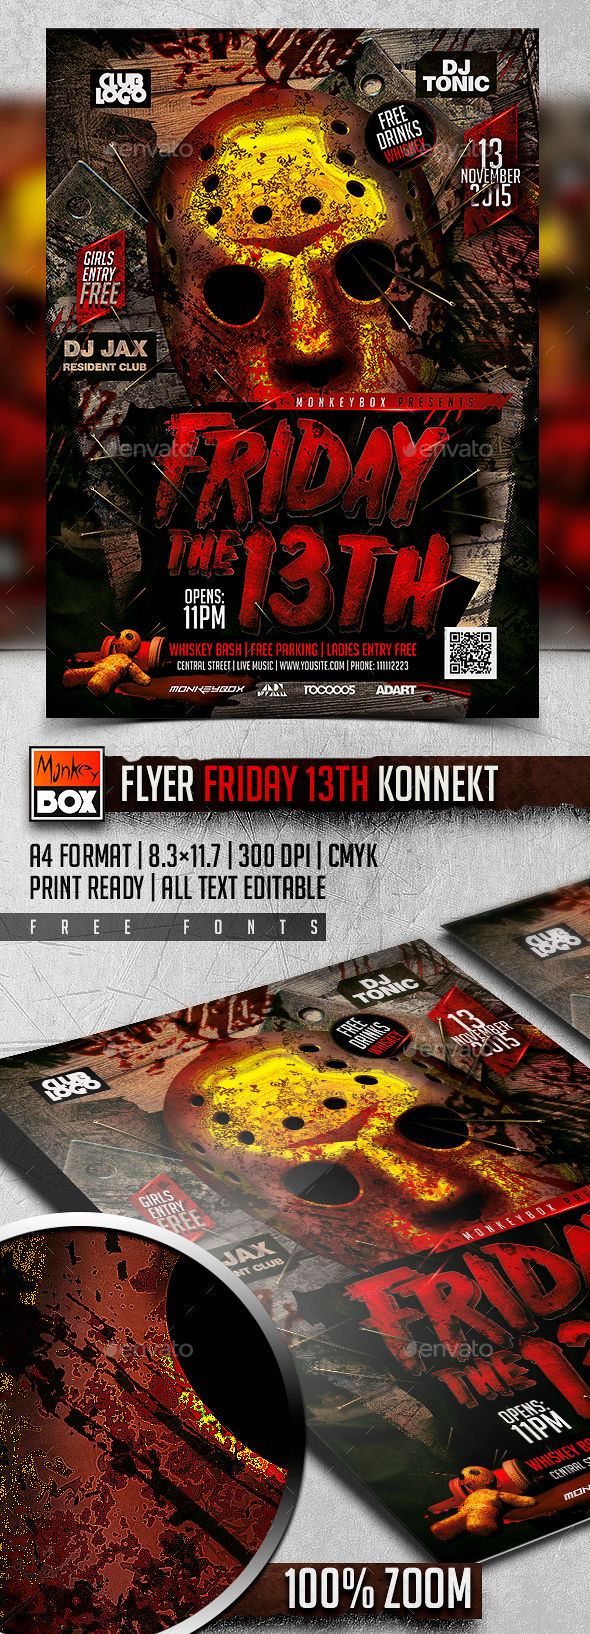 Flyer Friday Th Konnekt by MonkeyBOX (Halloween party flyer)